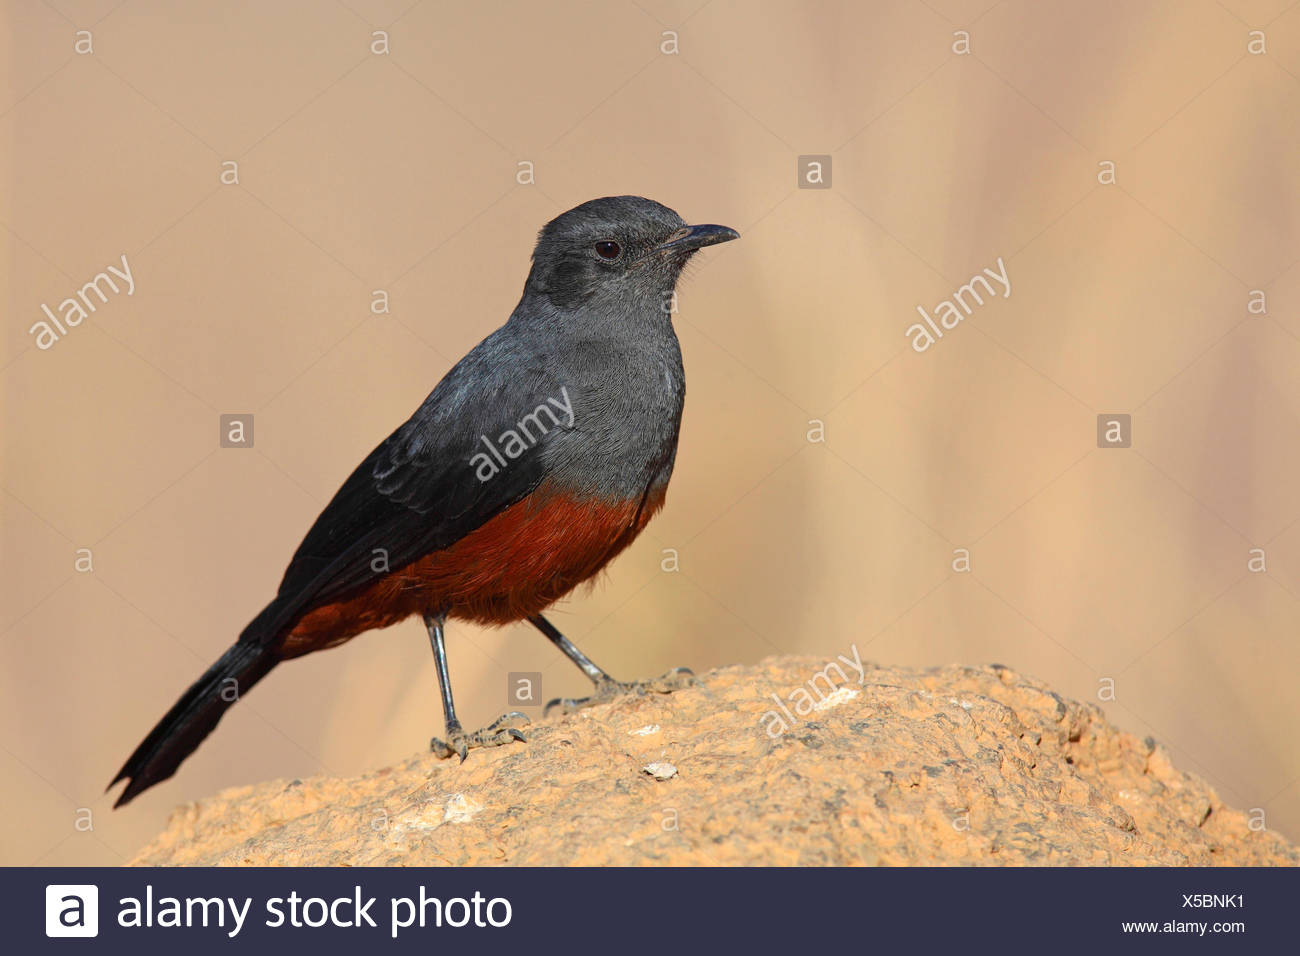 mocking cliffchat (Myrmecocichla cinnamomeiventris), female sits on a stone, South Africa, Pilanesberg National Park - Stock Image